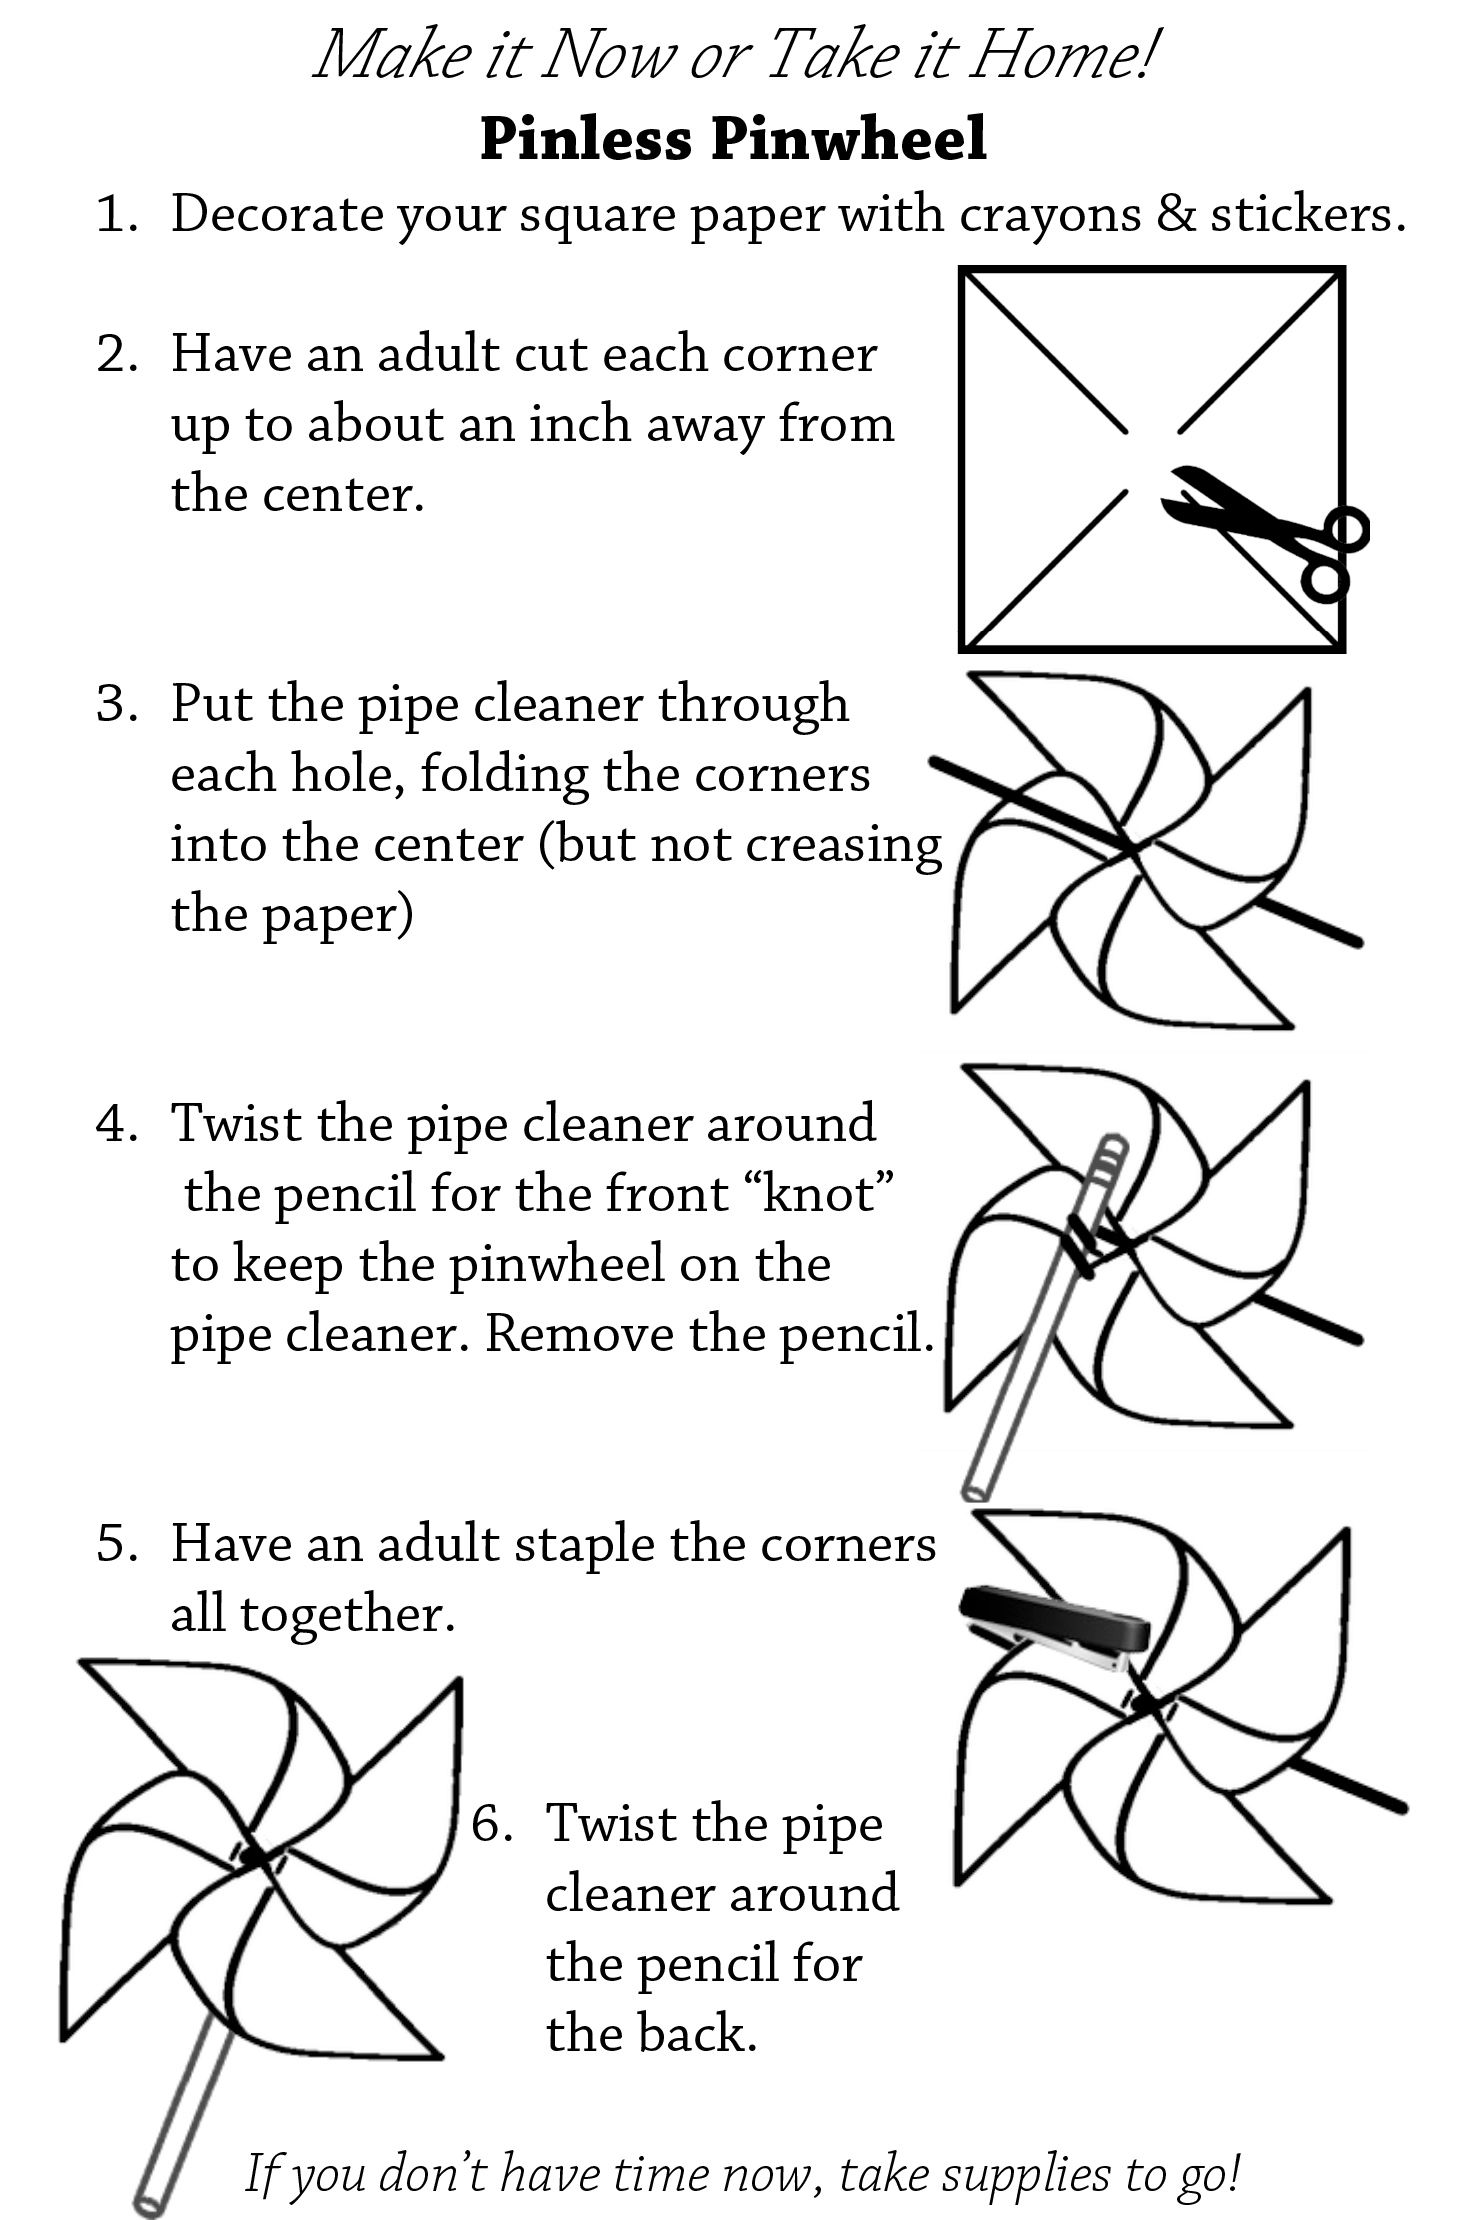 25 Modular Origami Pinwheel Printable Instructions Modular